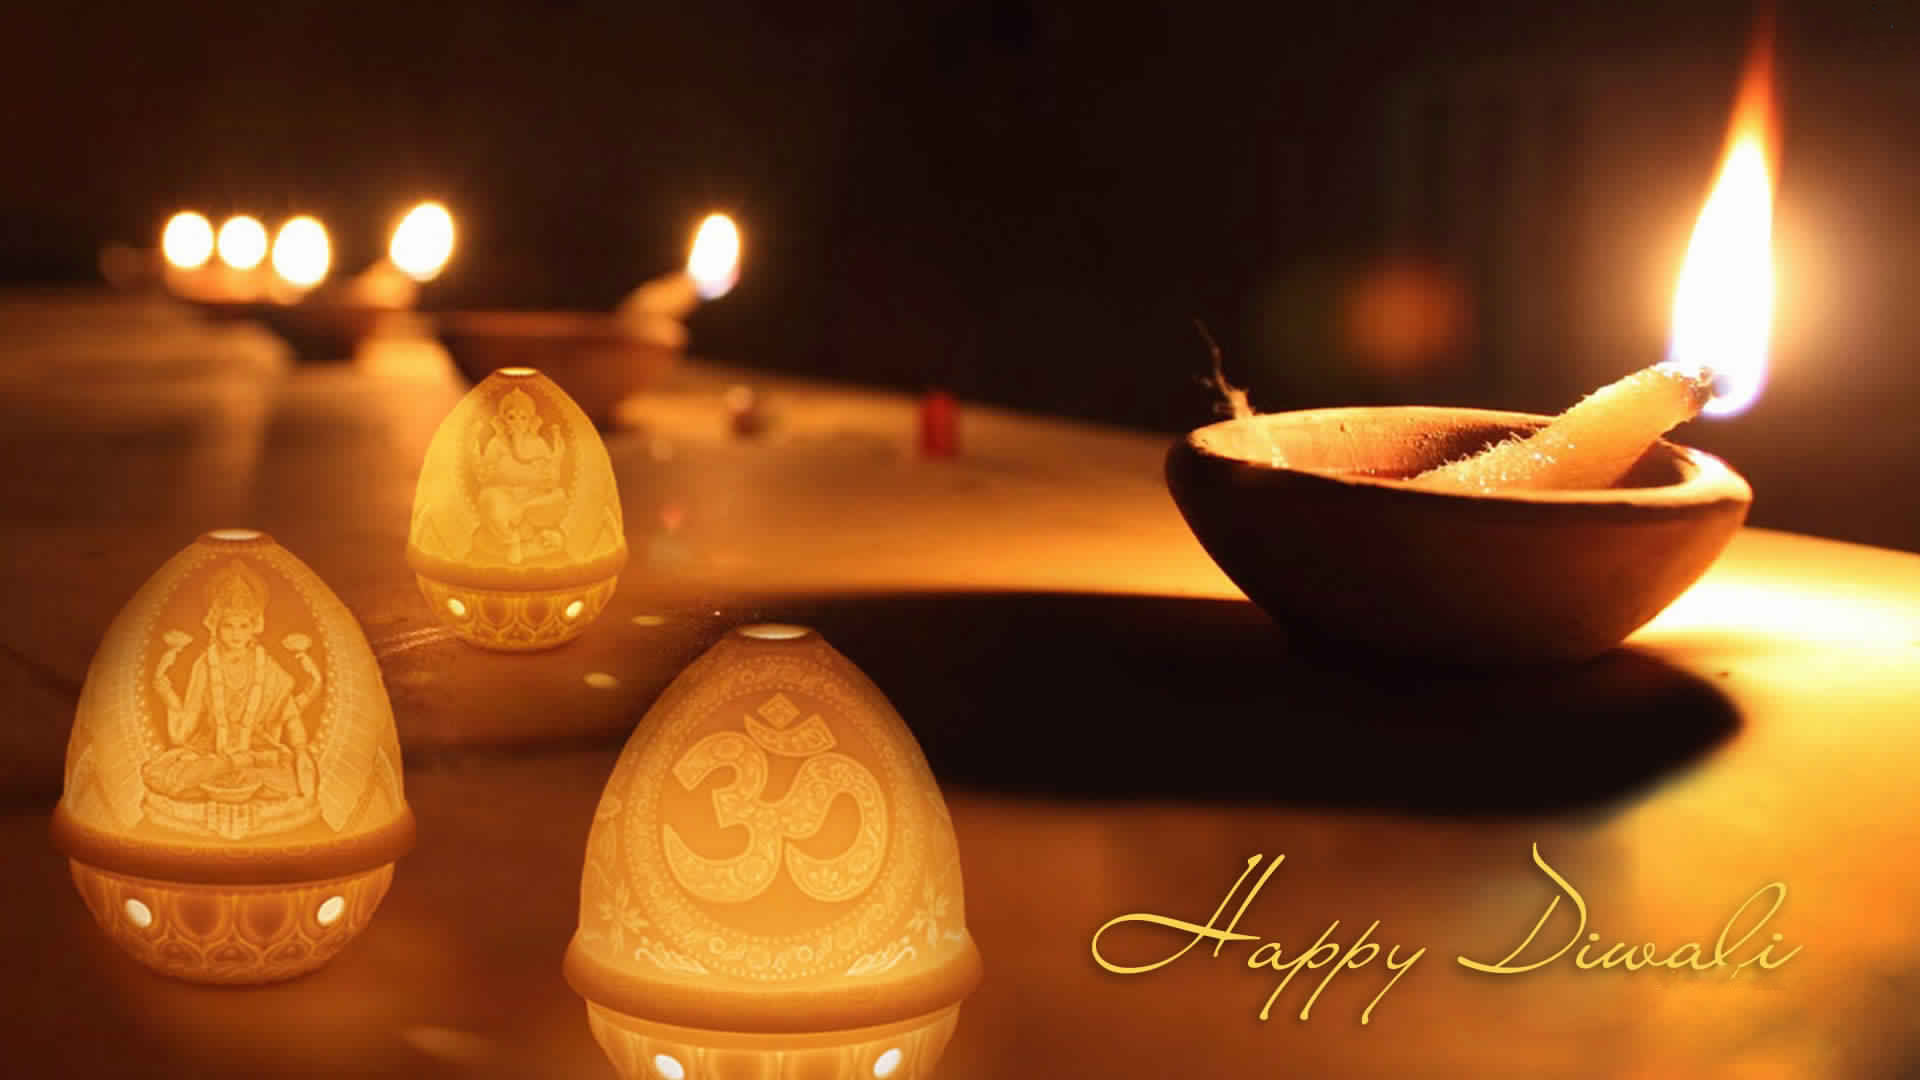 Greetings And Good Wishes Of Diwali Hd Desktop